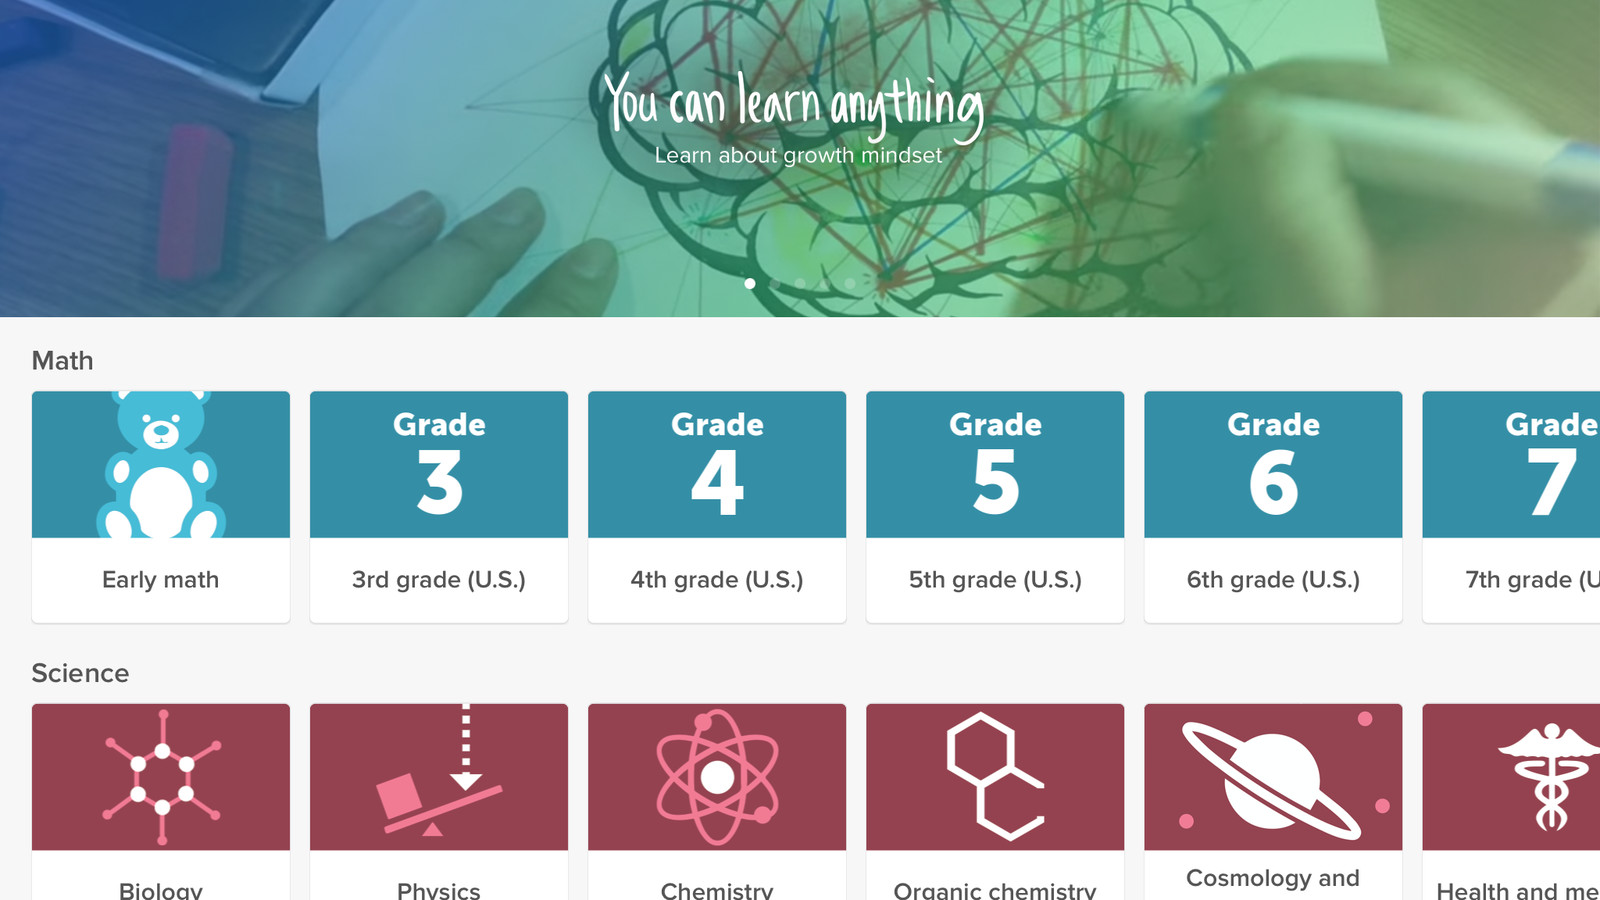 Every Khan Academy Course Is Now Available On The Ipad For First Parallel Circuit Diagram 4th Grade Time Verge